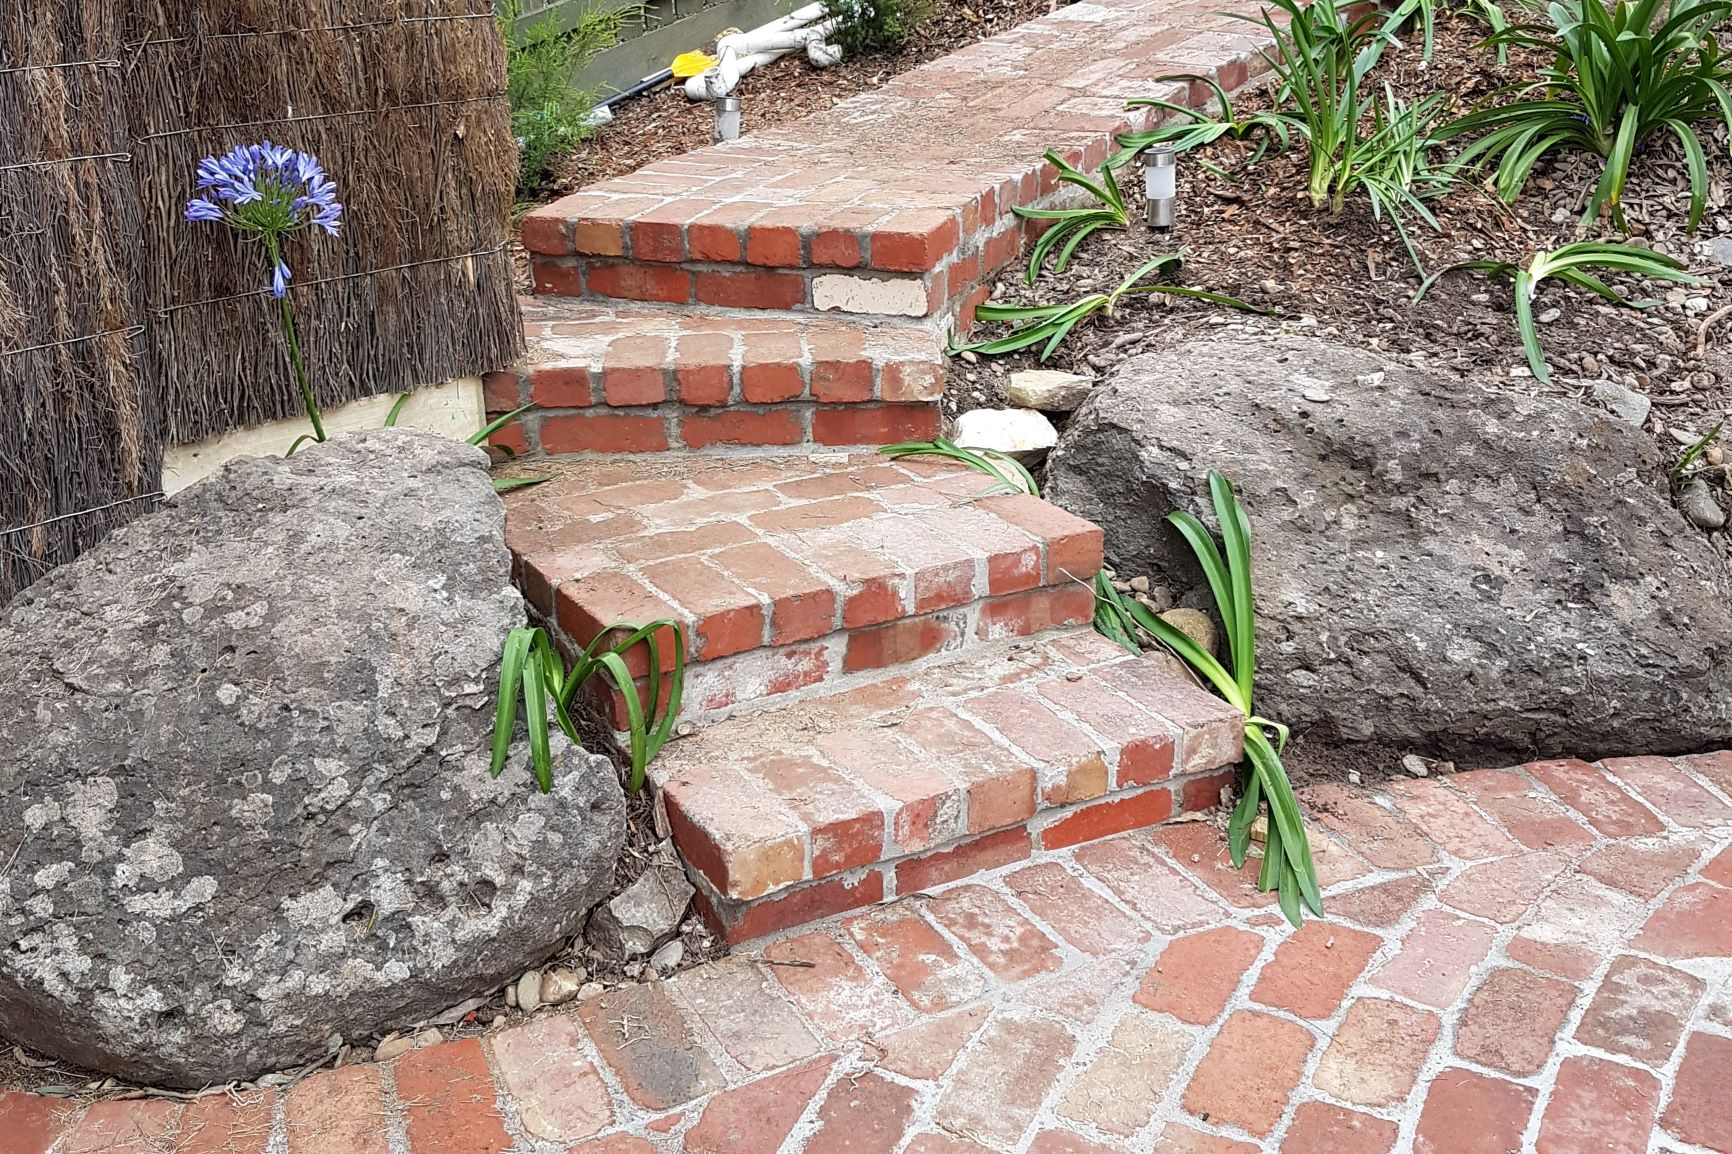 Second hand Red Brick paving and Steps, Second hand Red Bricks, Paving and Steps